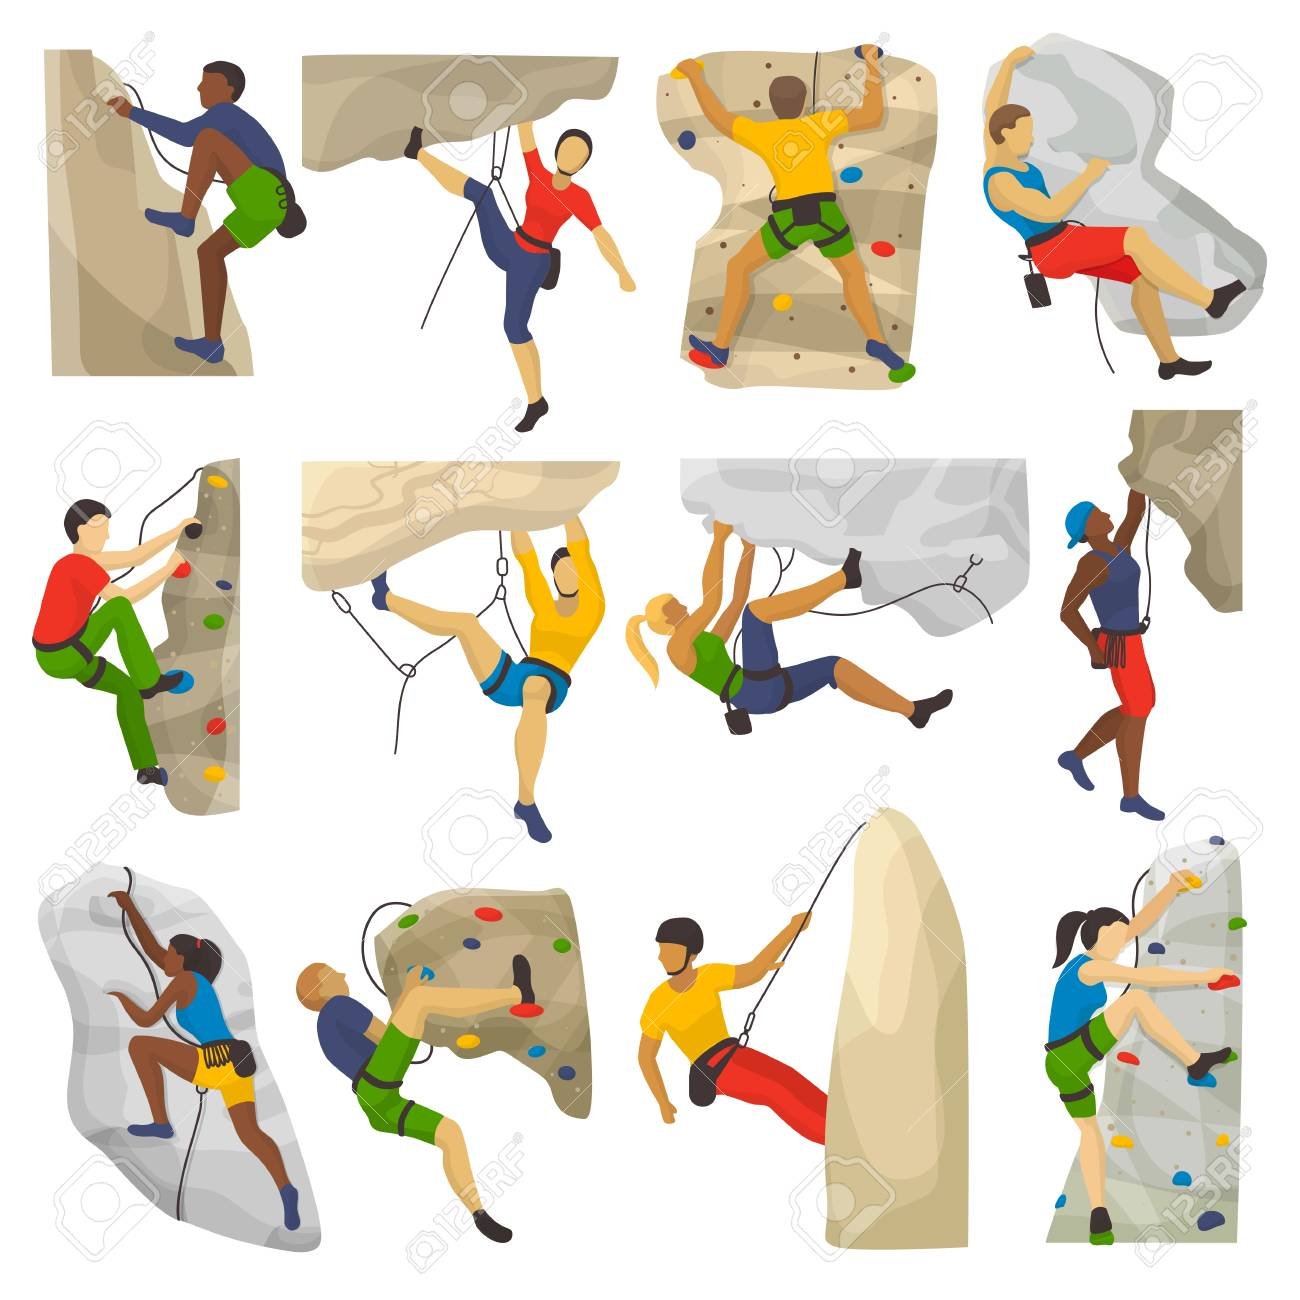 Mountain climbing vector climber climbs rock wall or mountainous cliff and people in extreme sport mountaineer character mounts set illustration of mountaineering isolated on white background - 93923343